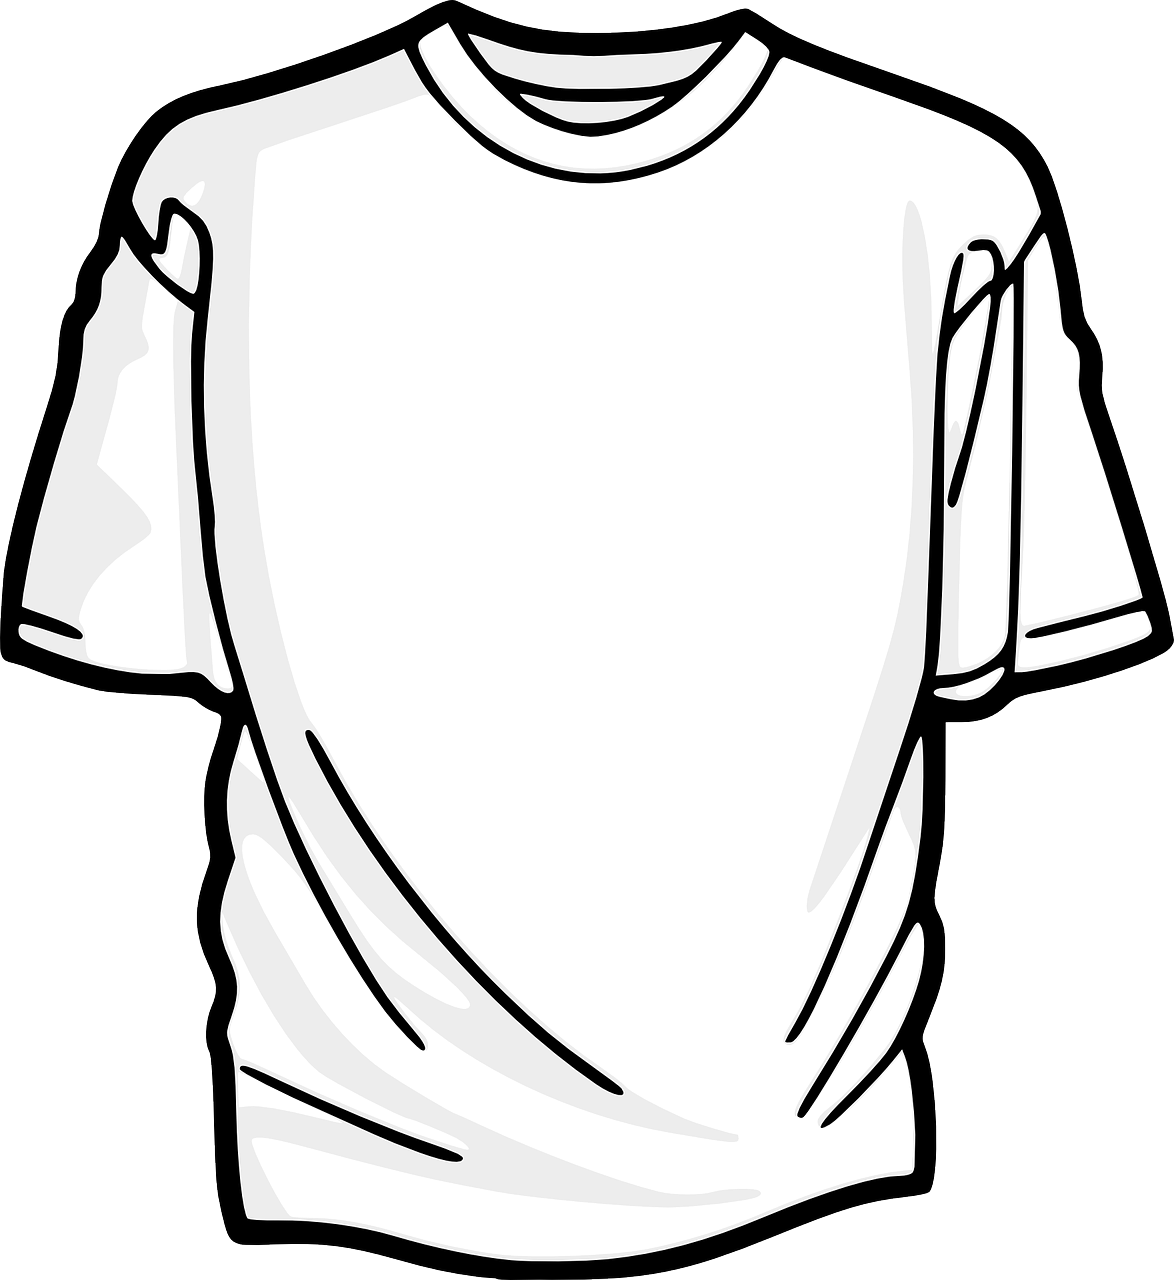 Image of a tshirt